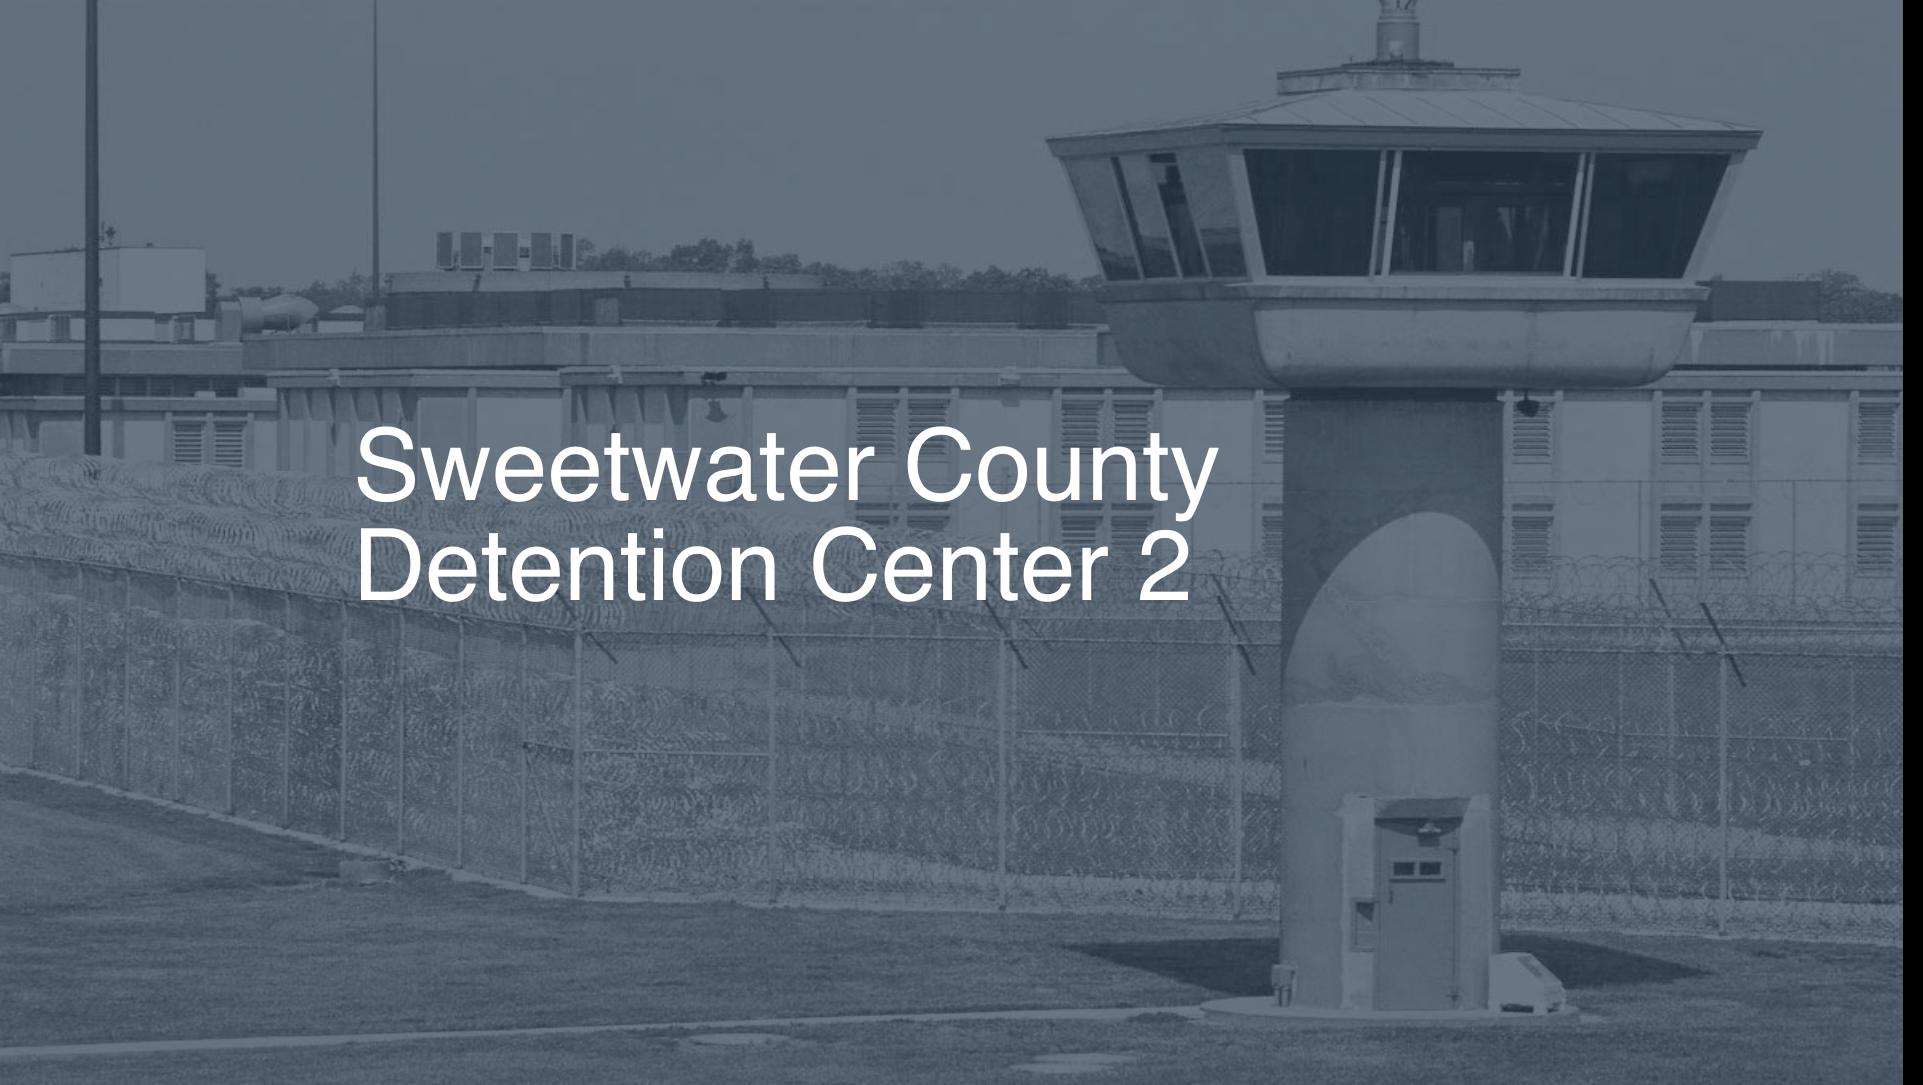 Sweetwater County Detention Center correctional facility picture